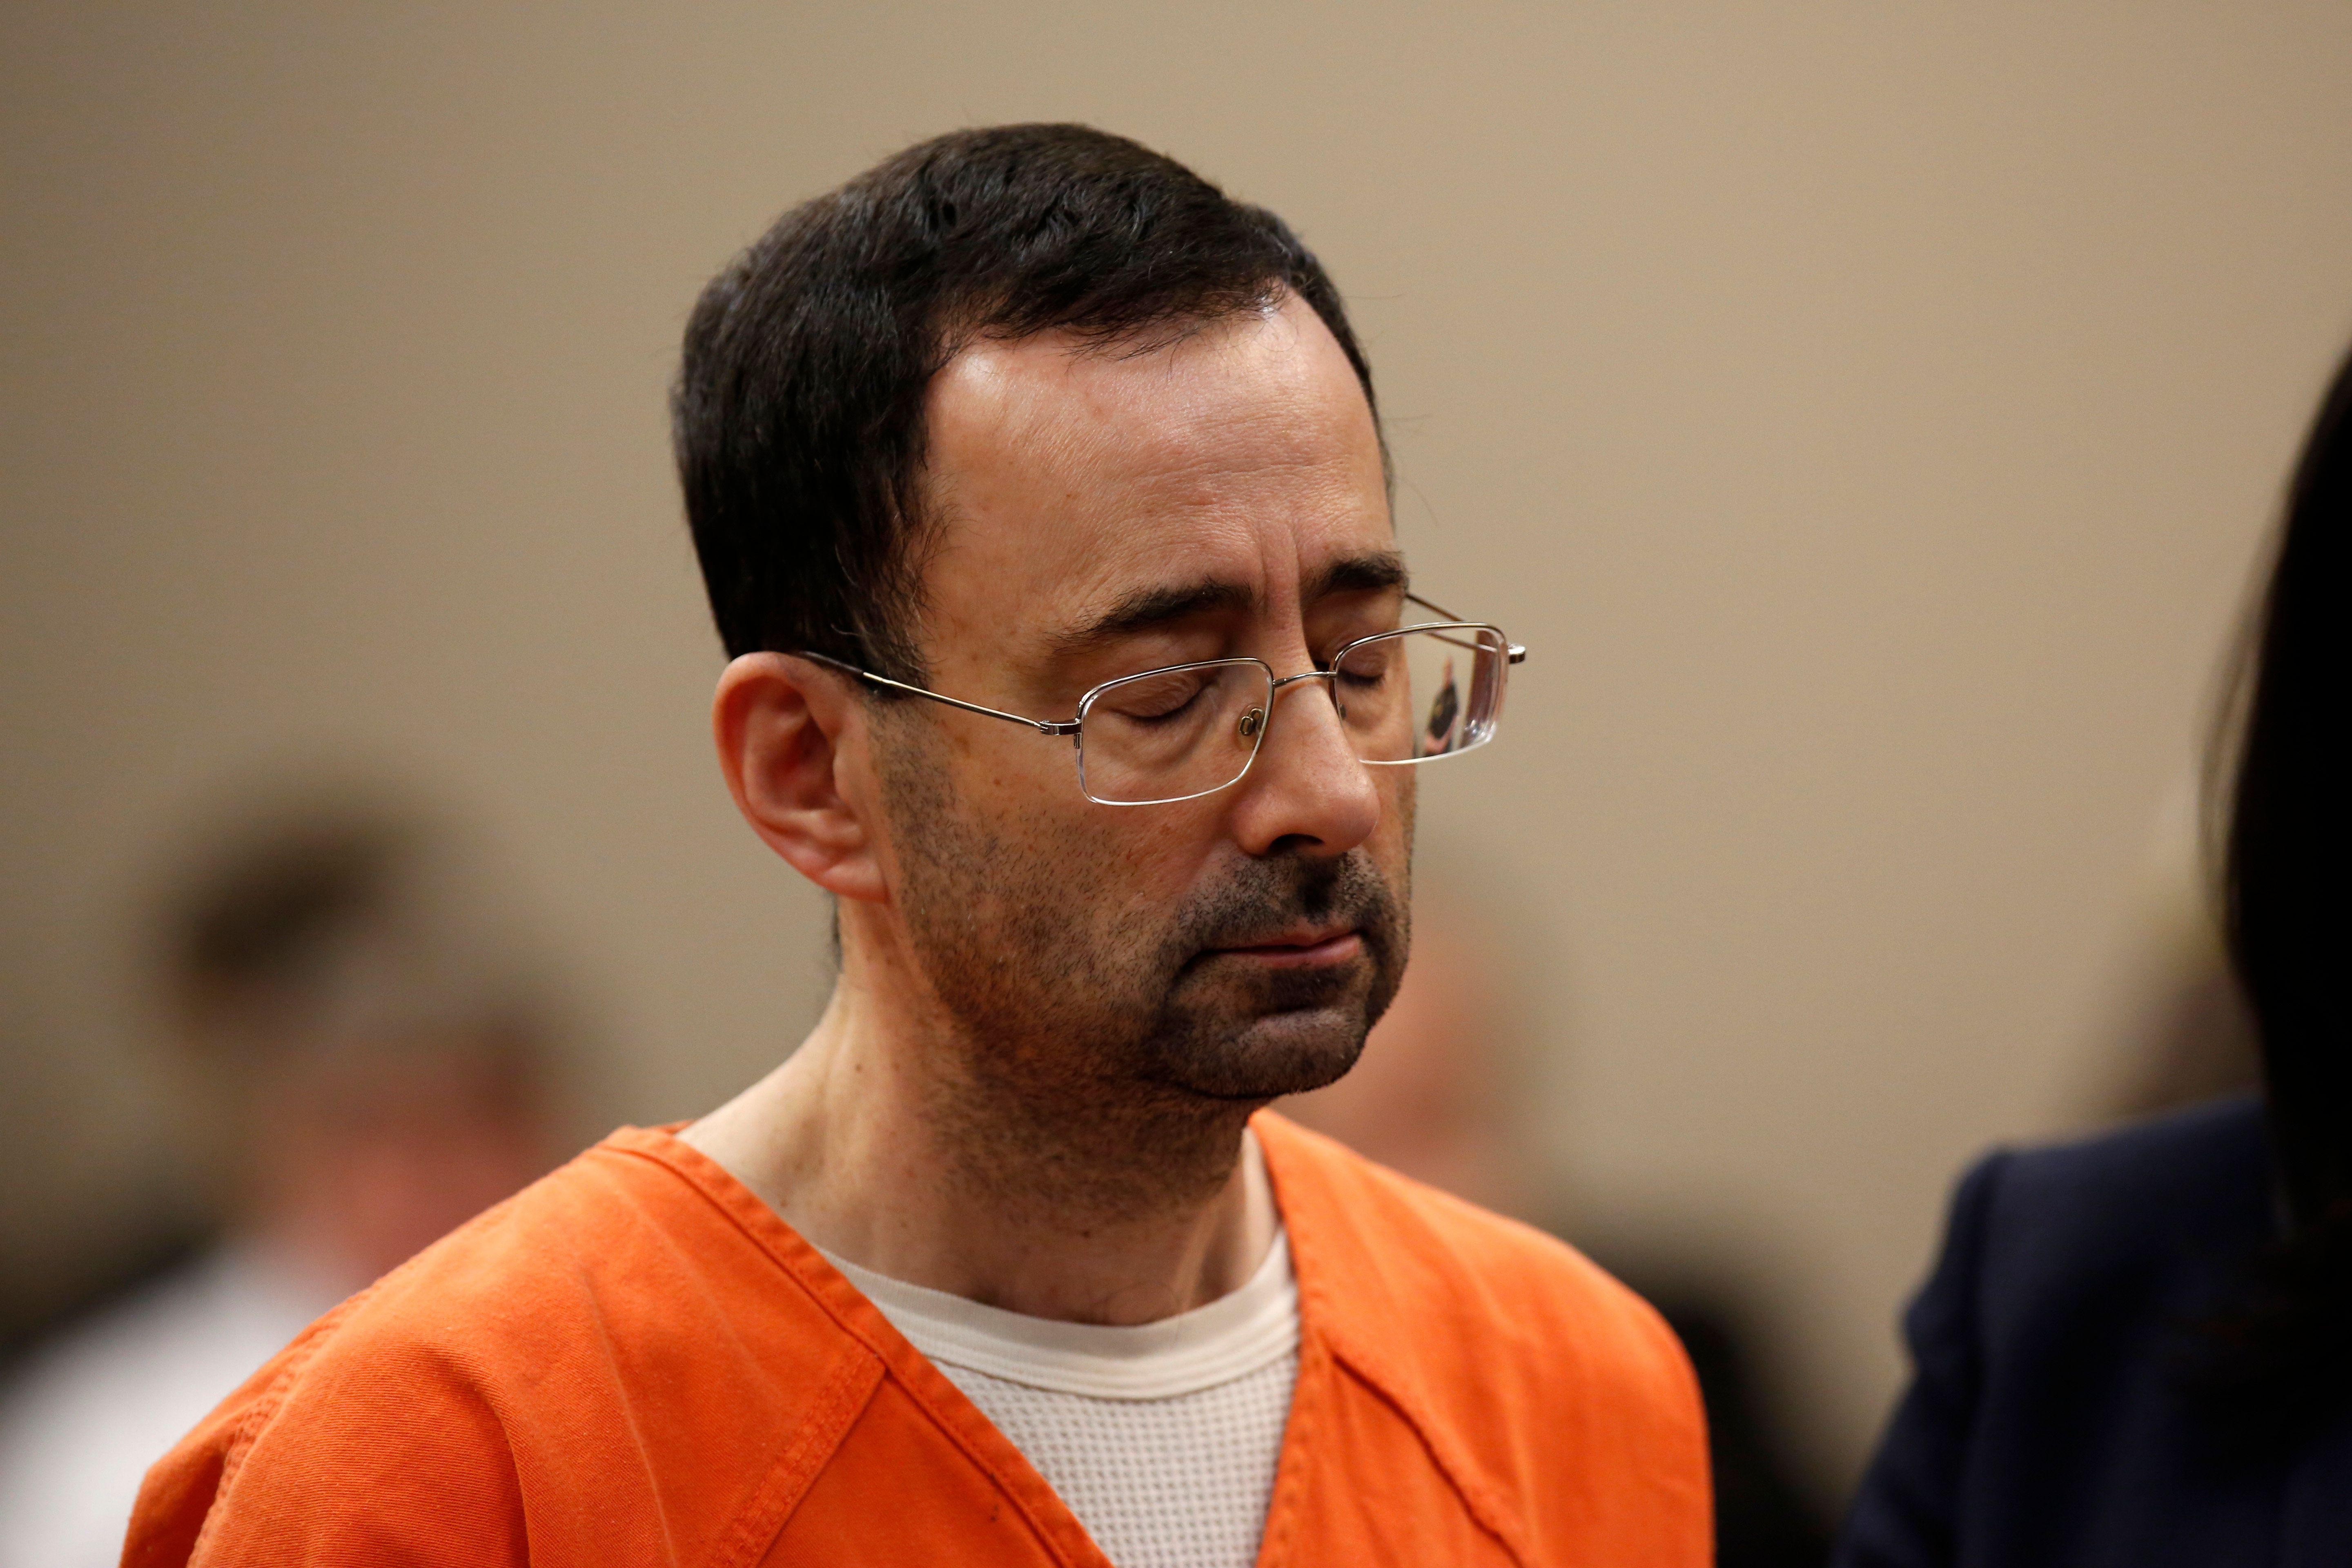 Former Usa Gymnastics Team Doctor Larry Nassar Has Pleaded Guilty To Multiple Counts Of